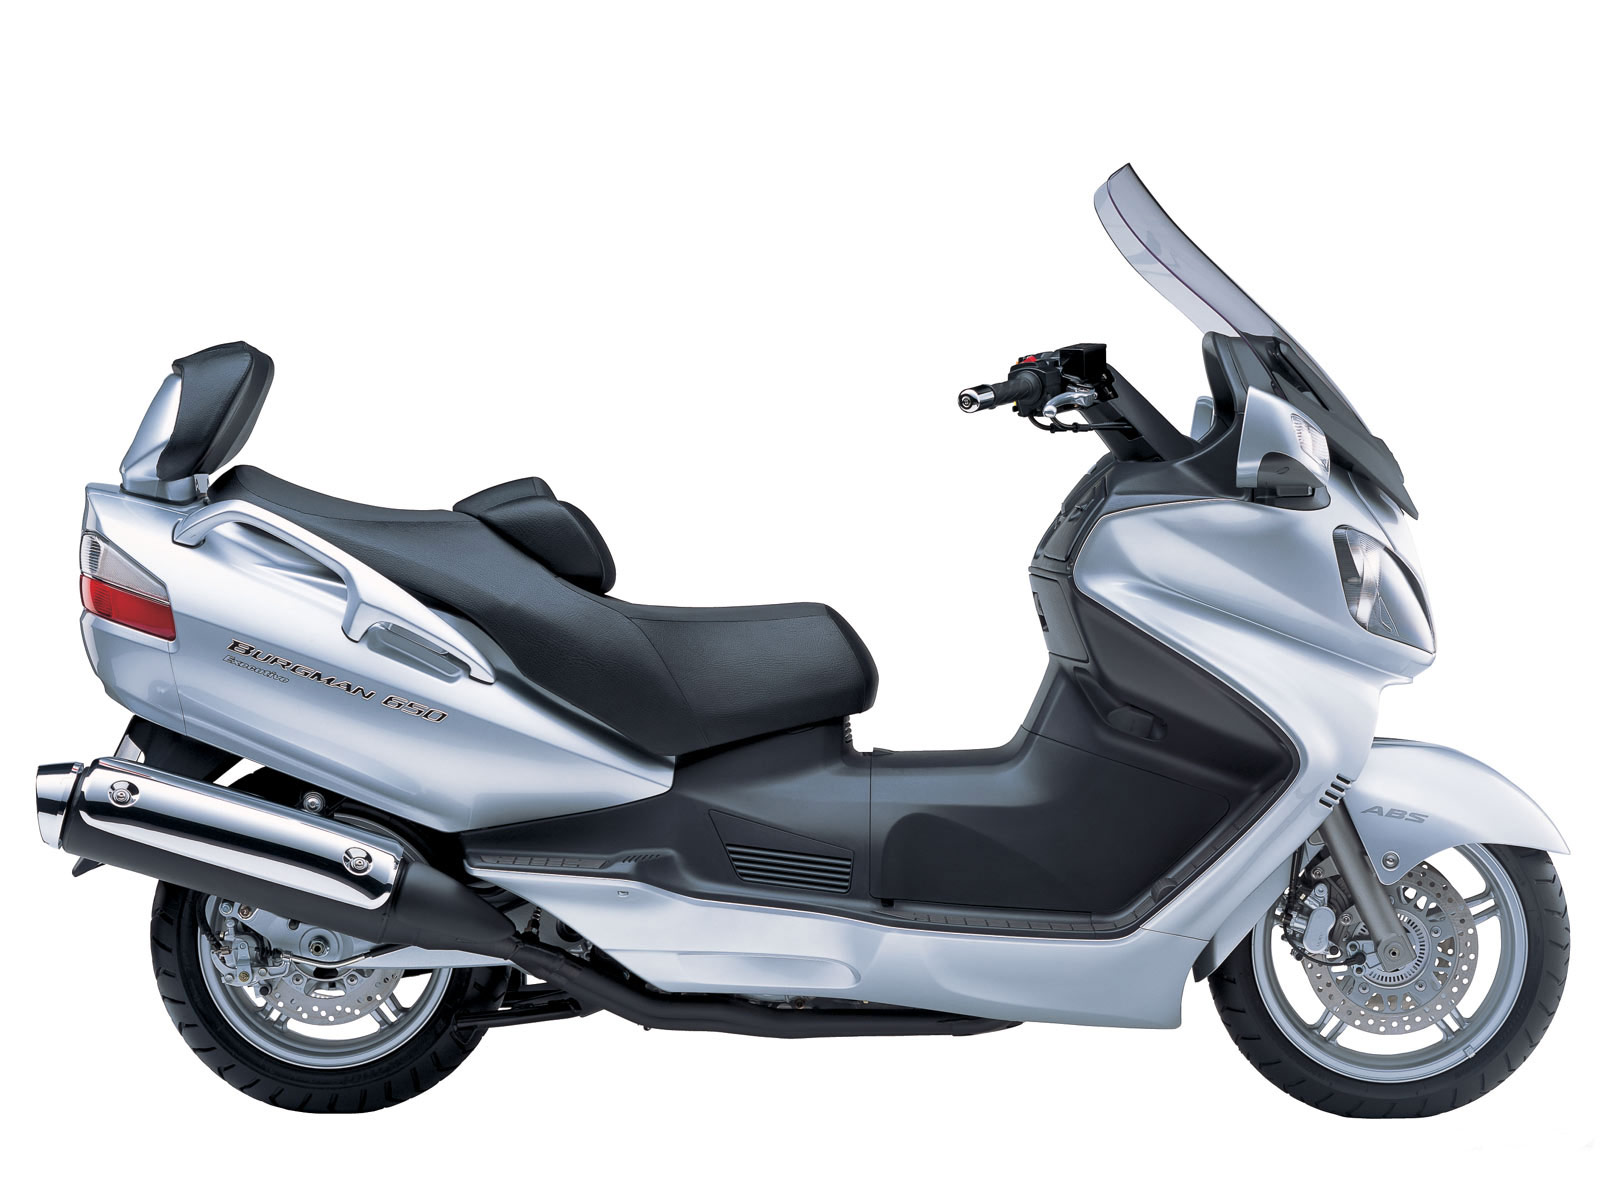 2005 suzuki an burgman 650 executive scooter pictures. Black Bedroom Furniture Sets. Home Design Ideas